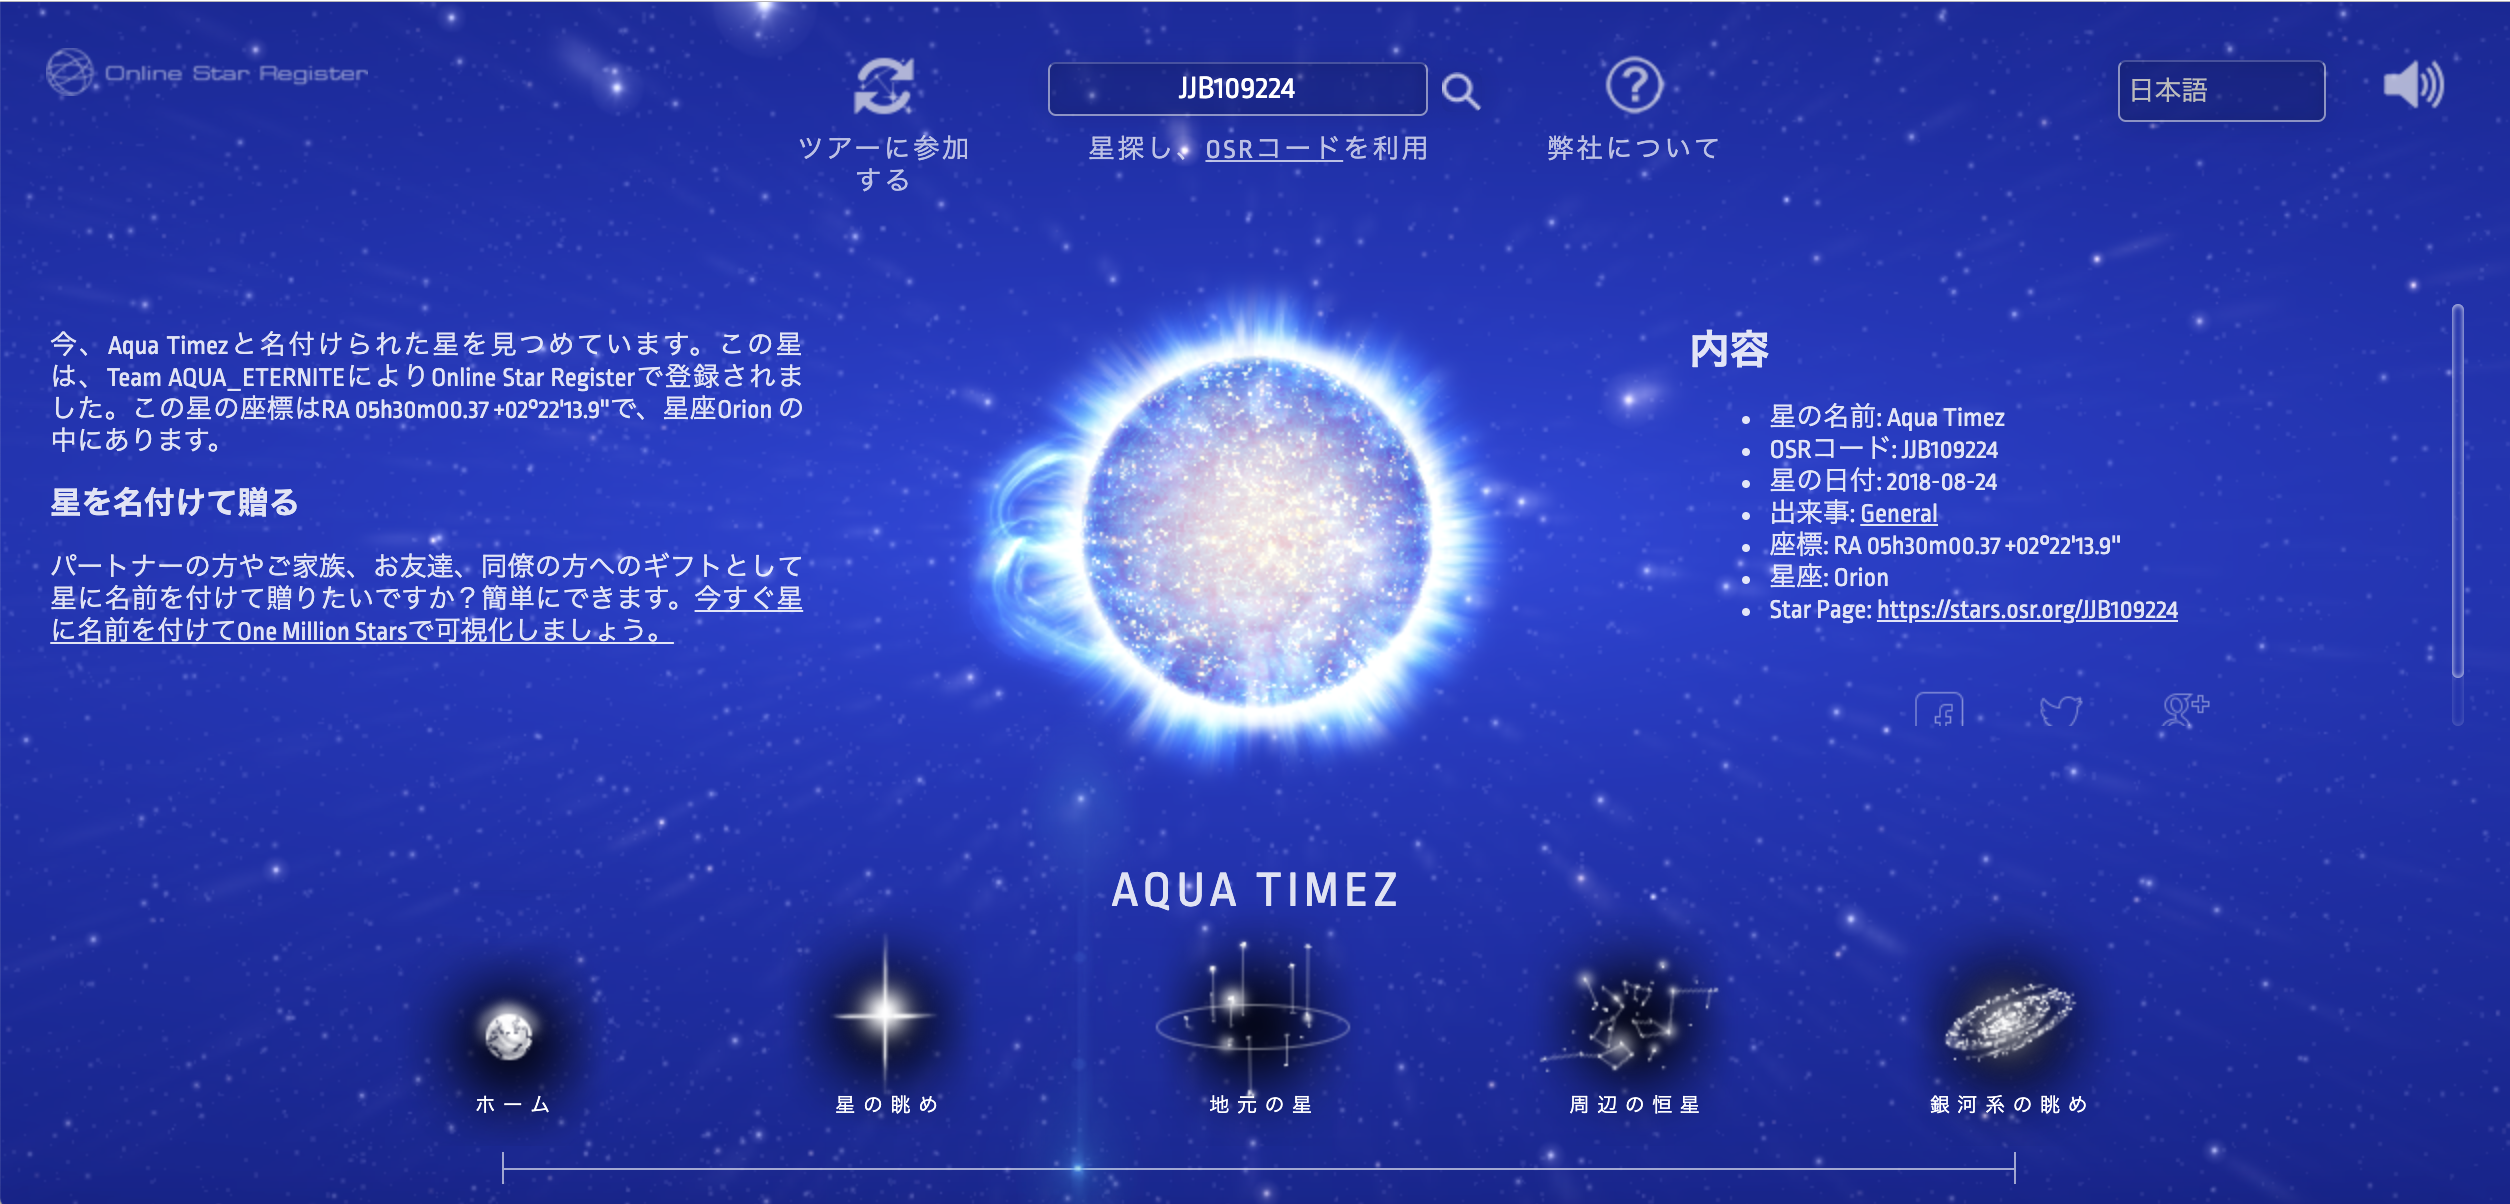 Aqua Timez | Online Star Register